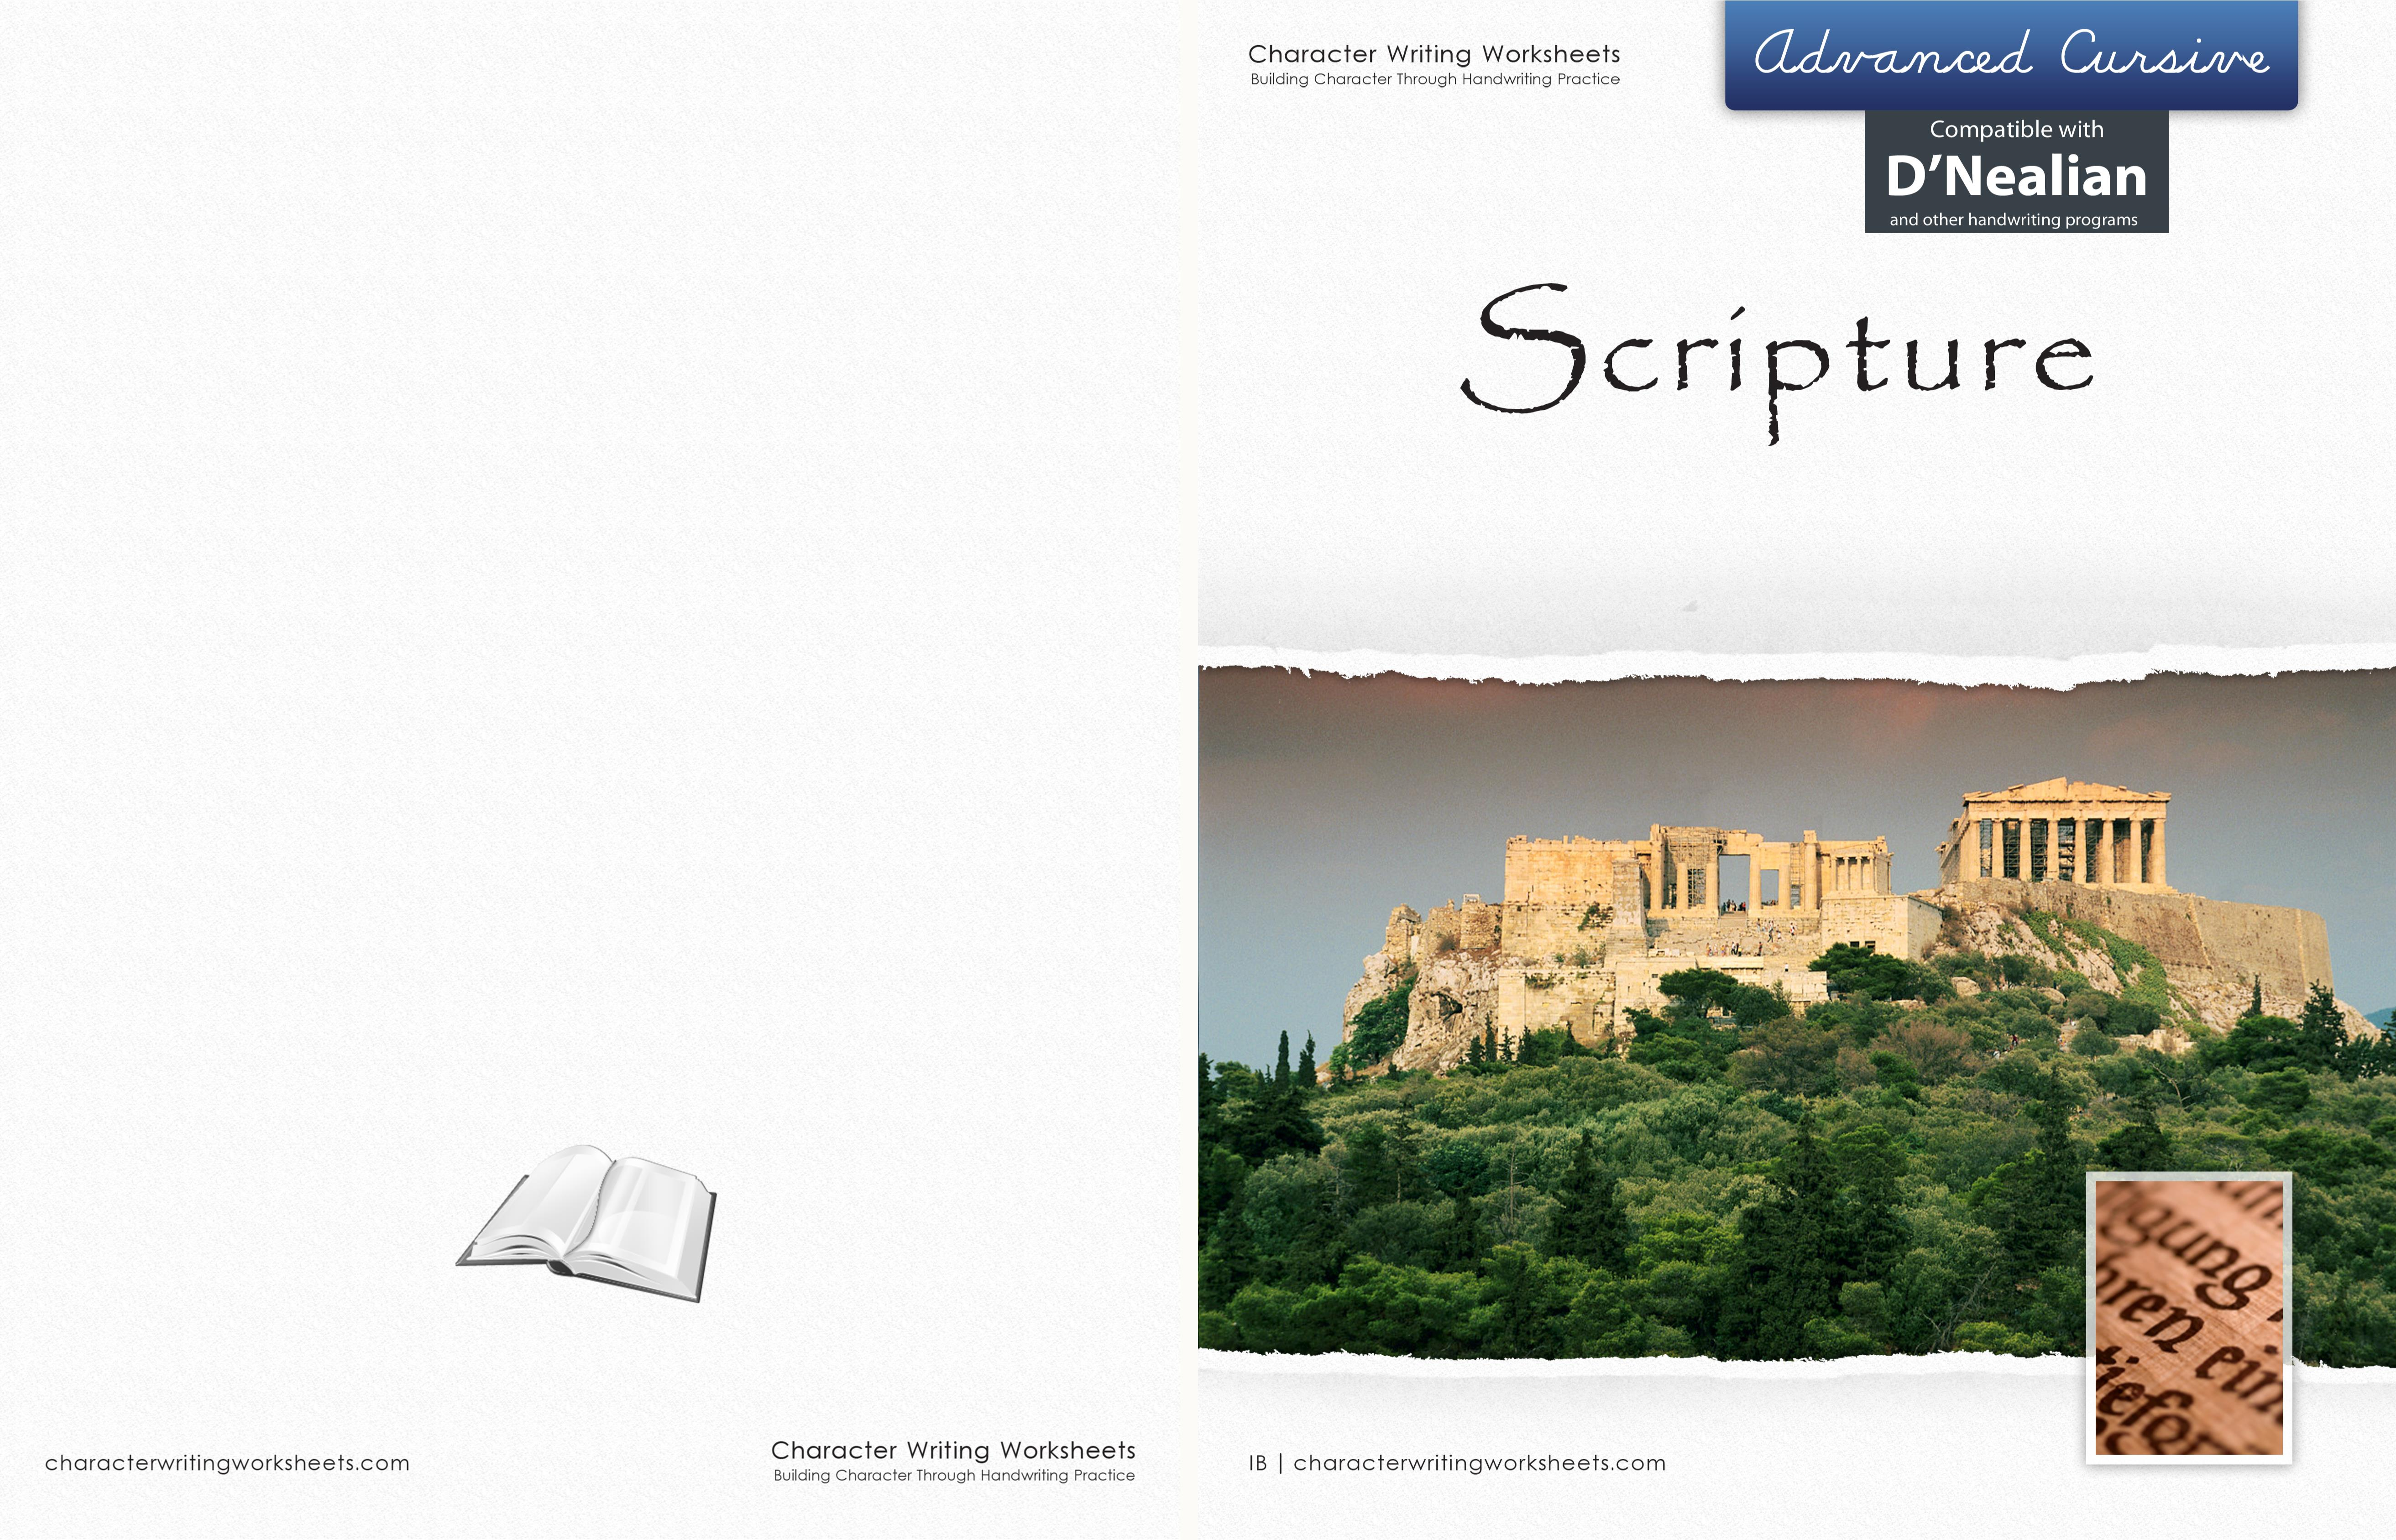 DN - Scripture - Advanced Cursive cover image